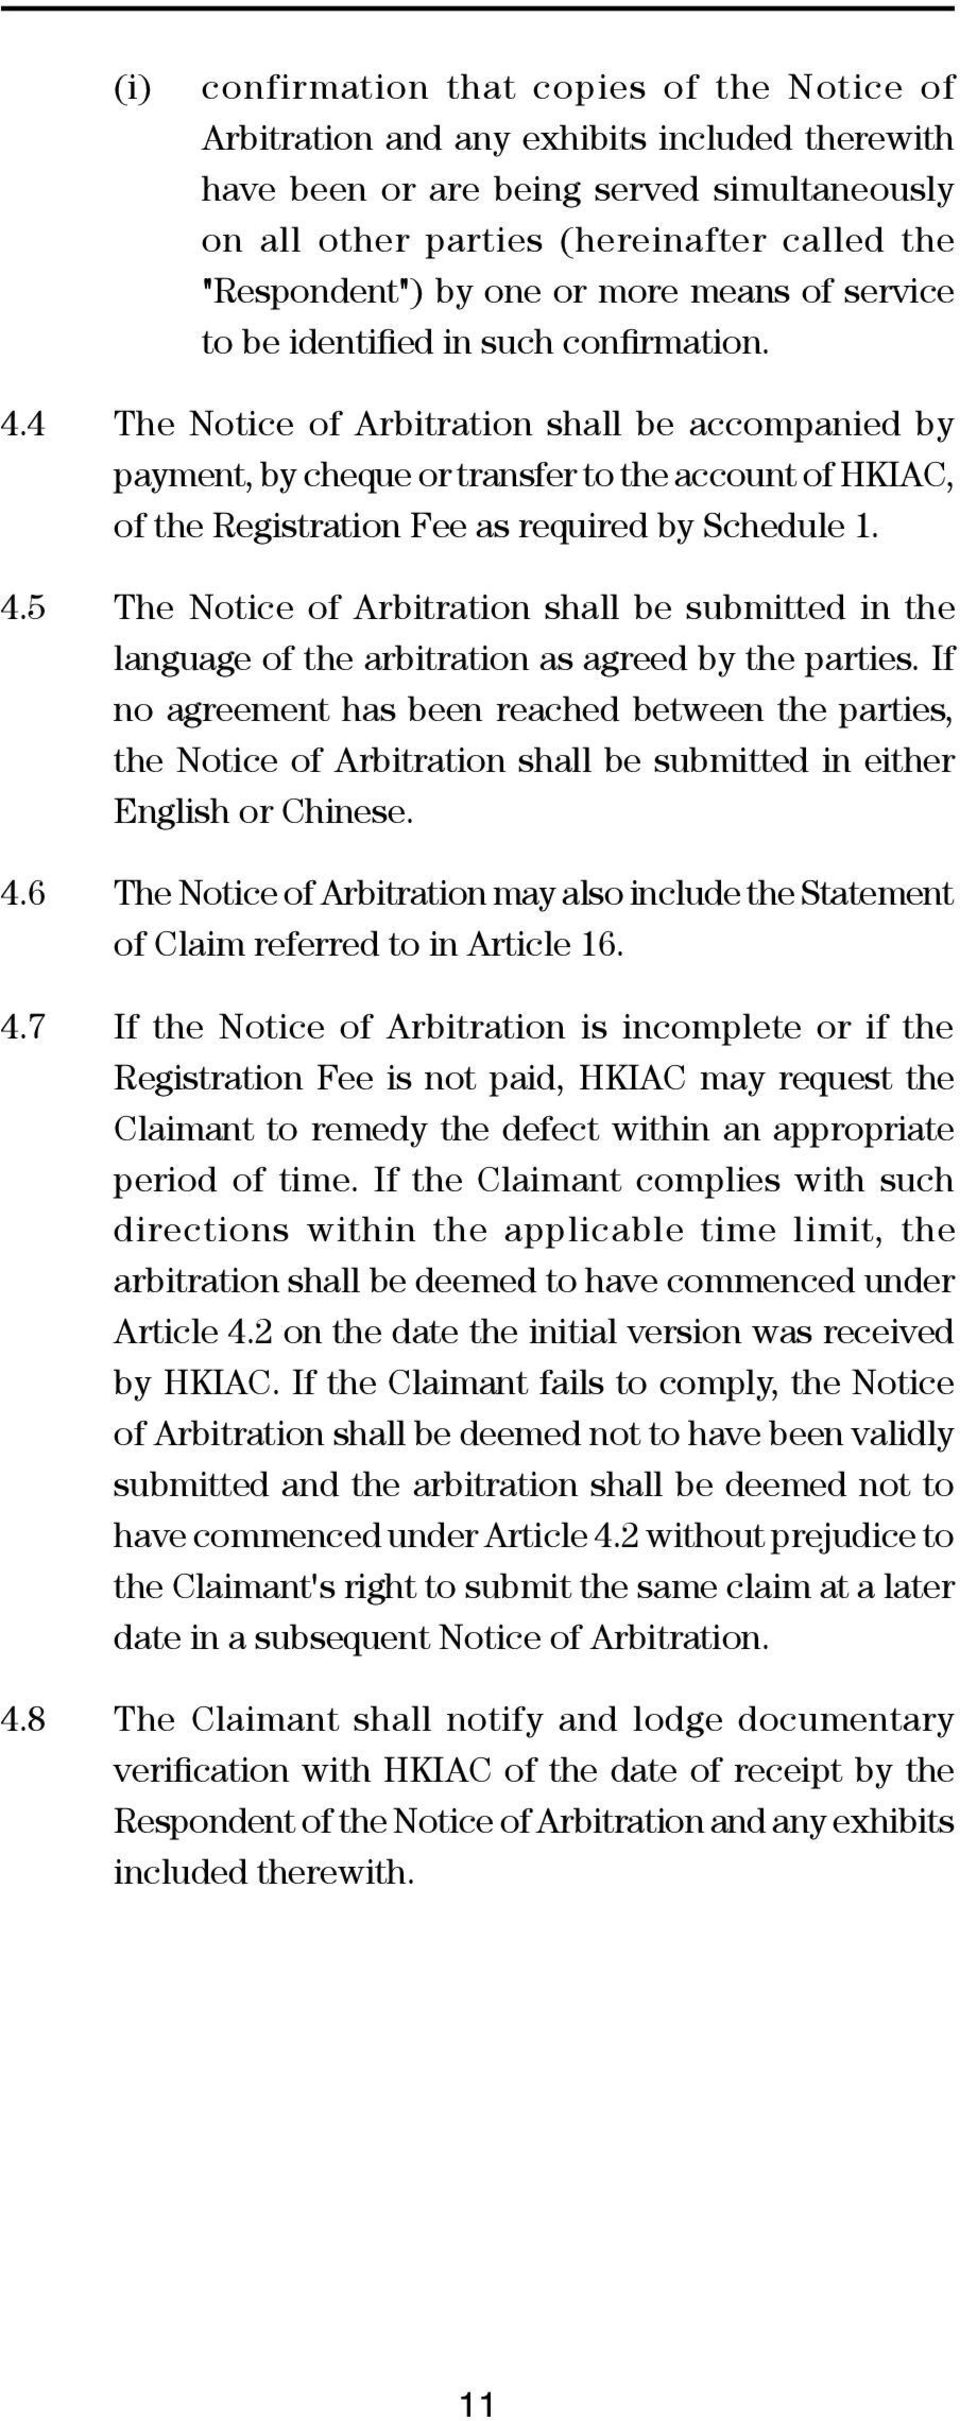 4 The Notice of Arbitration shall be accompanied by payment, by cheque or transfer to the account of HKIAC, of the Registration Fee as required by Schedule 1. 4.